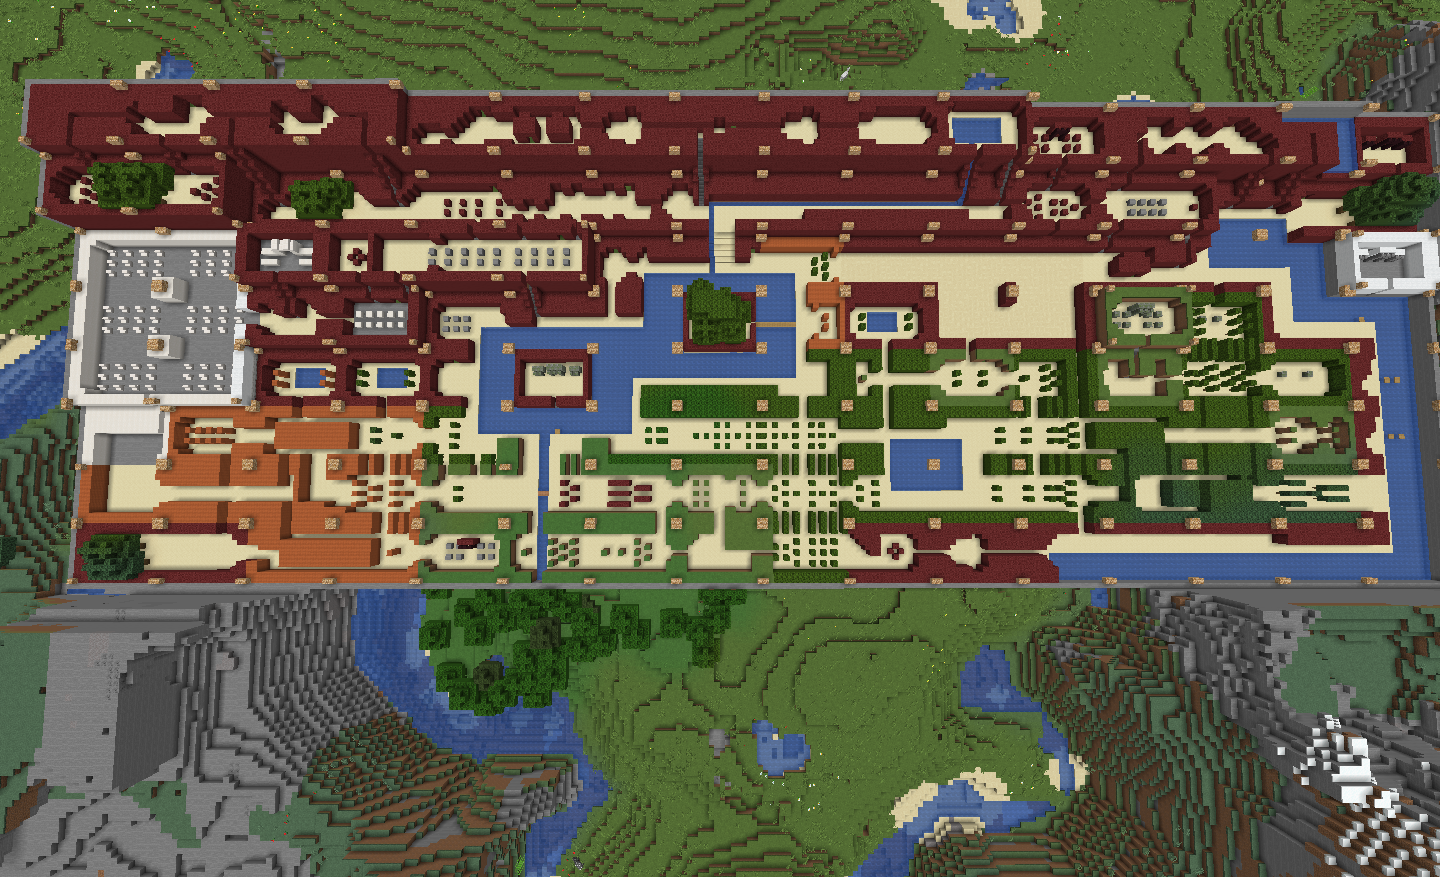 Created a 3-D version of the Classic Legend of Zelda map ...